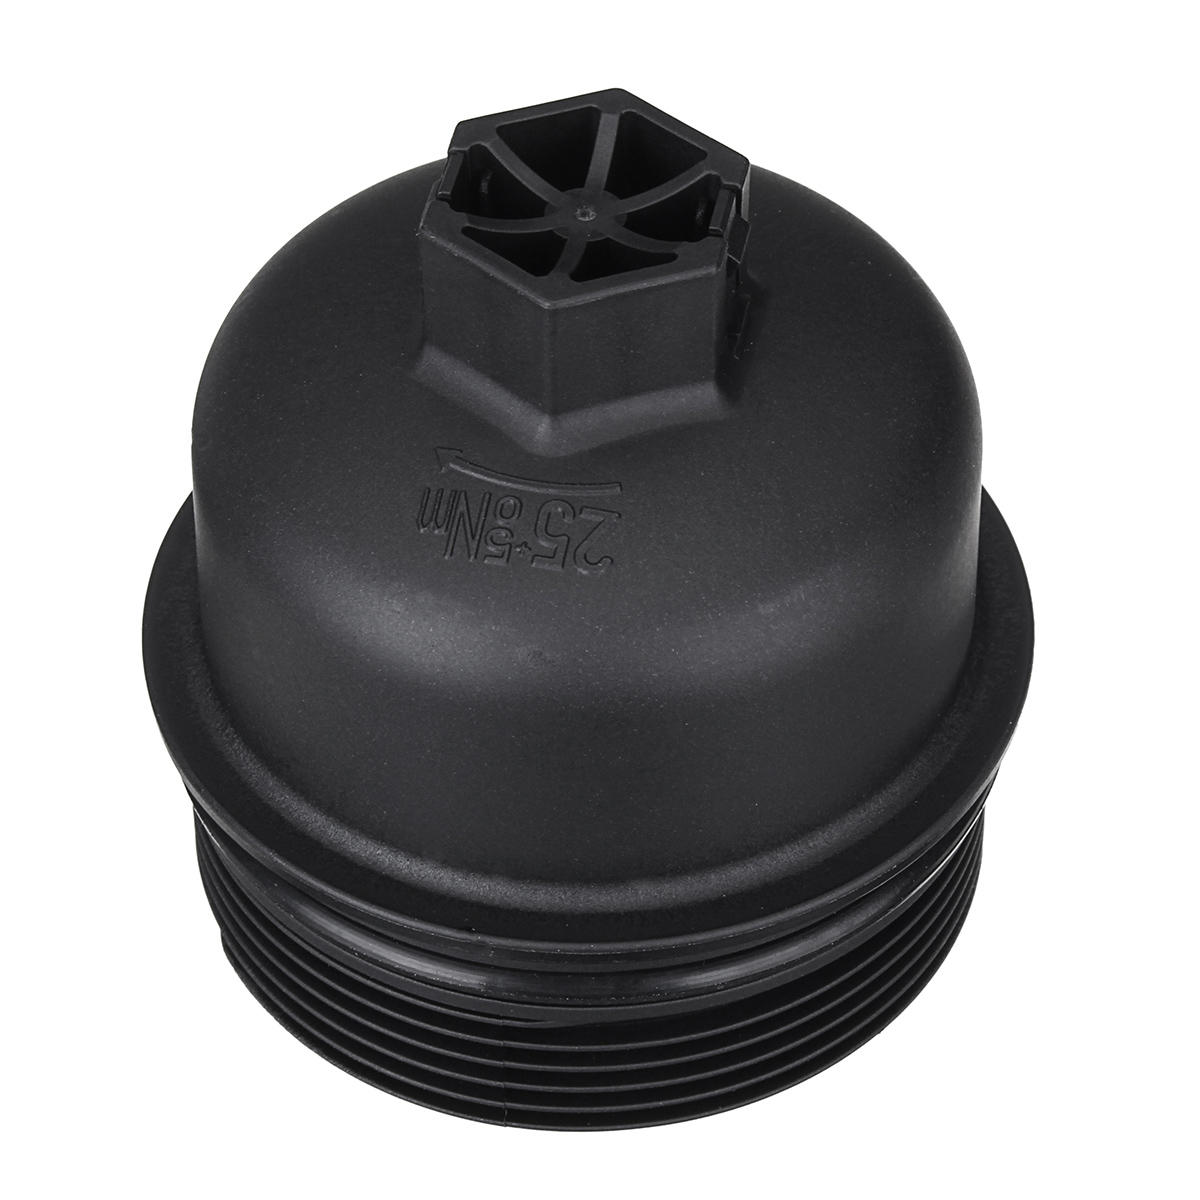 Oil Filter Lid Housing Top Cover Cap For Ford Transit MK7 Galaxy Mondeo Focus